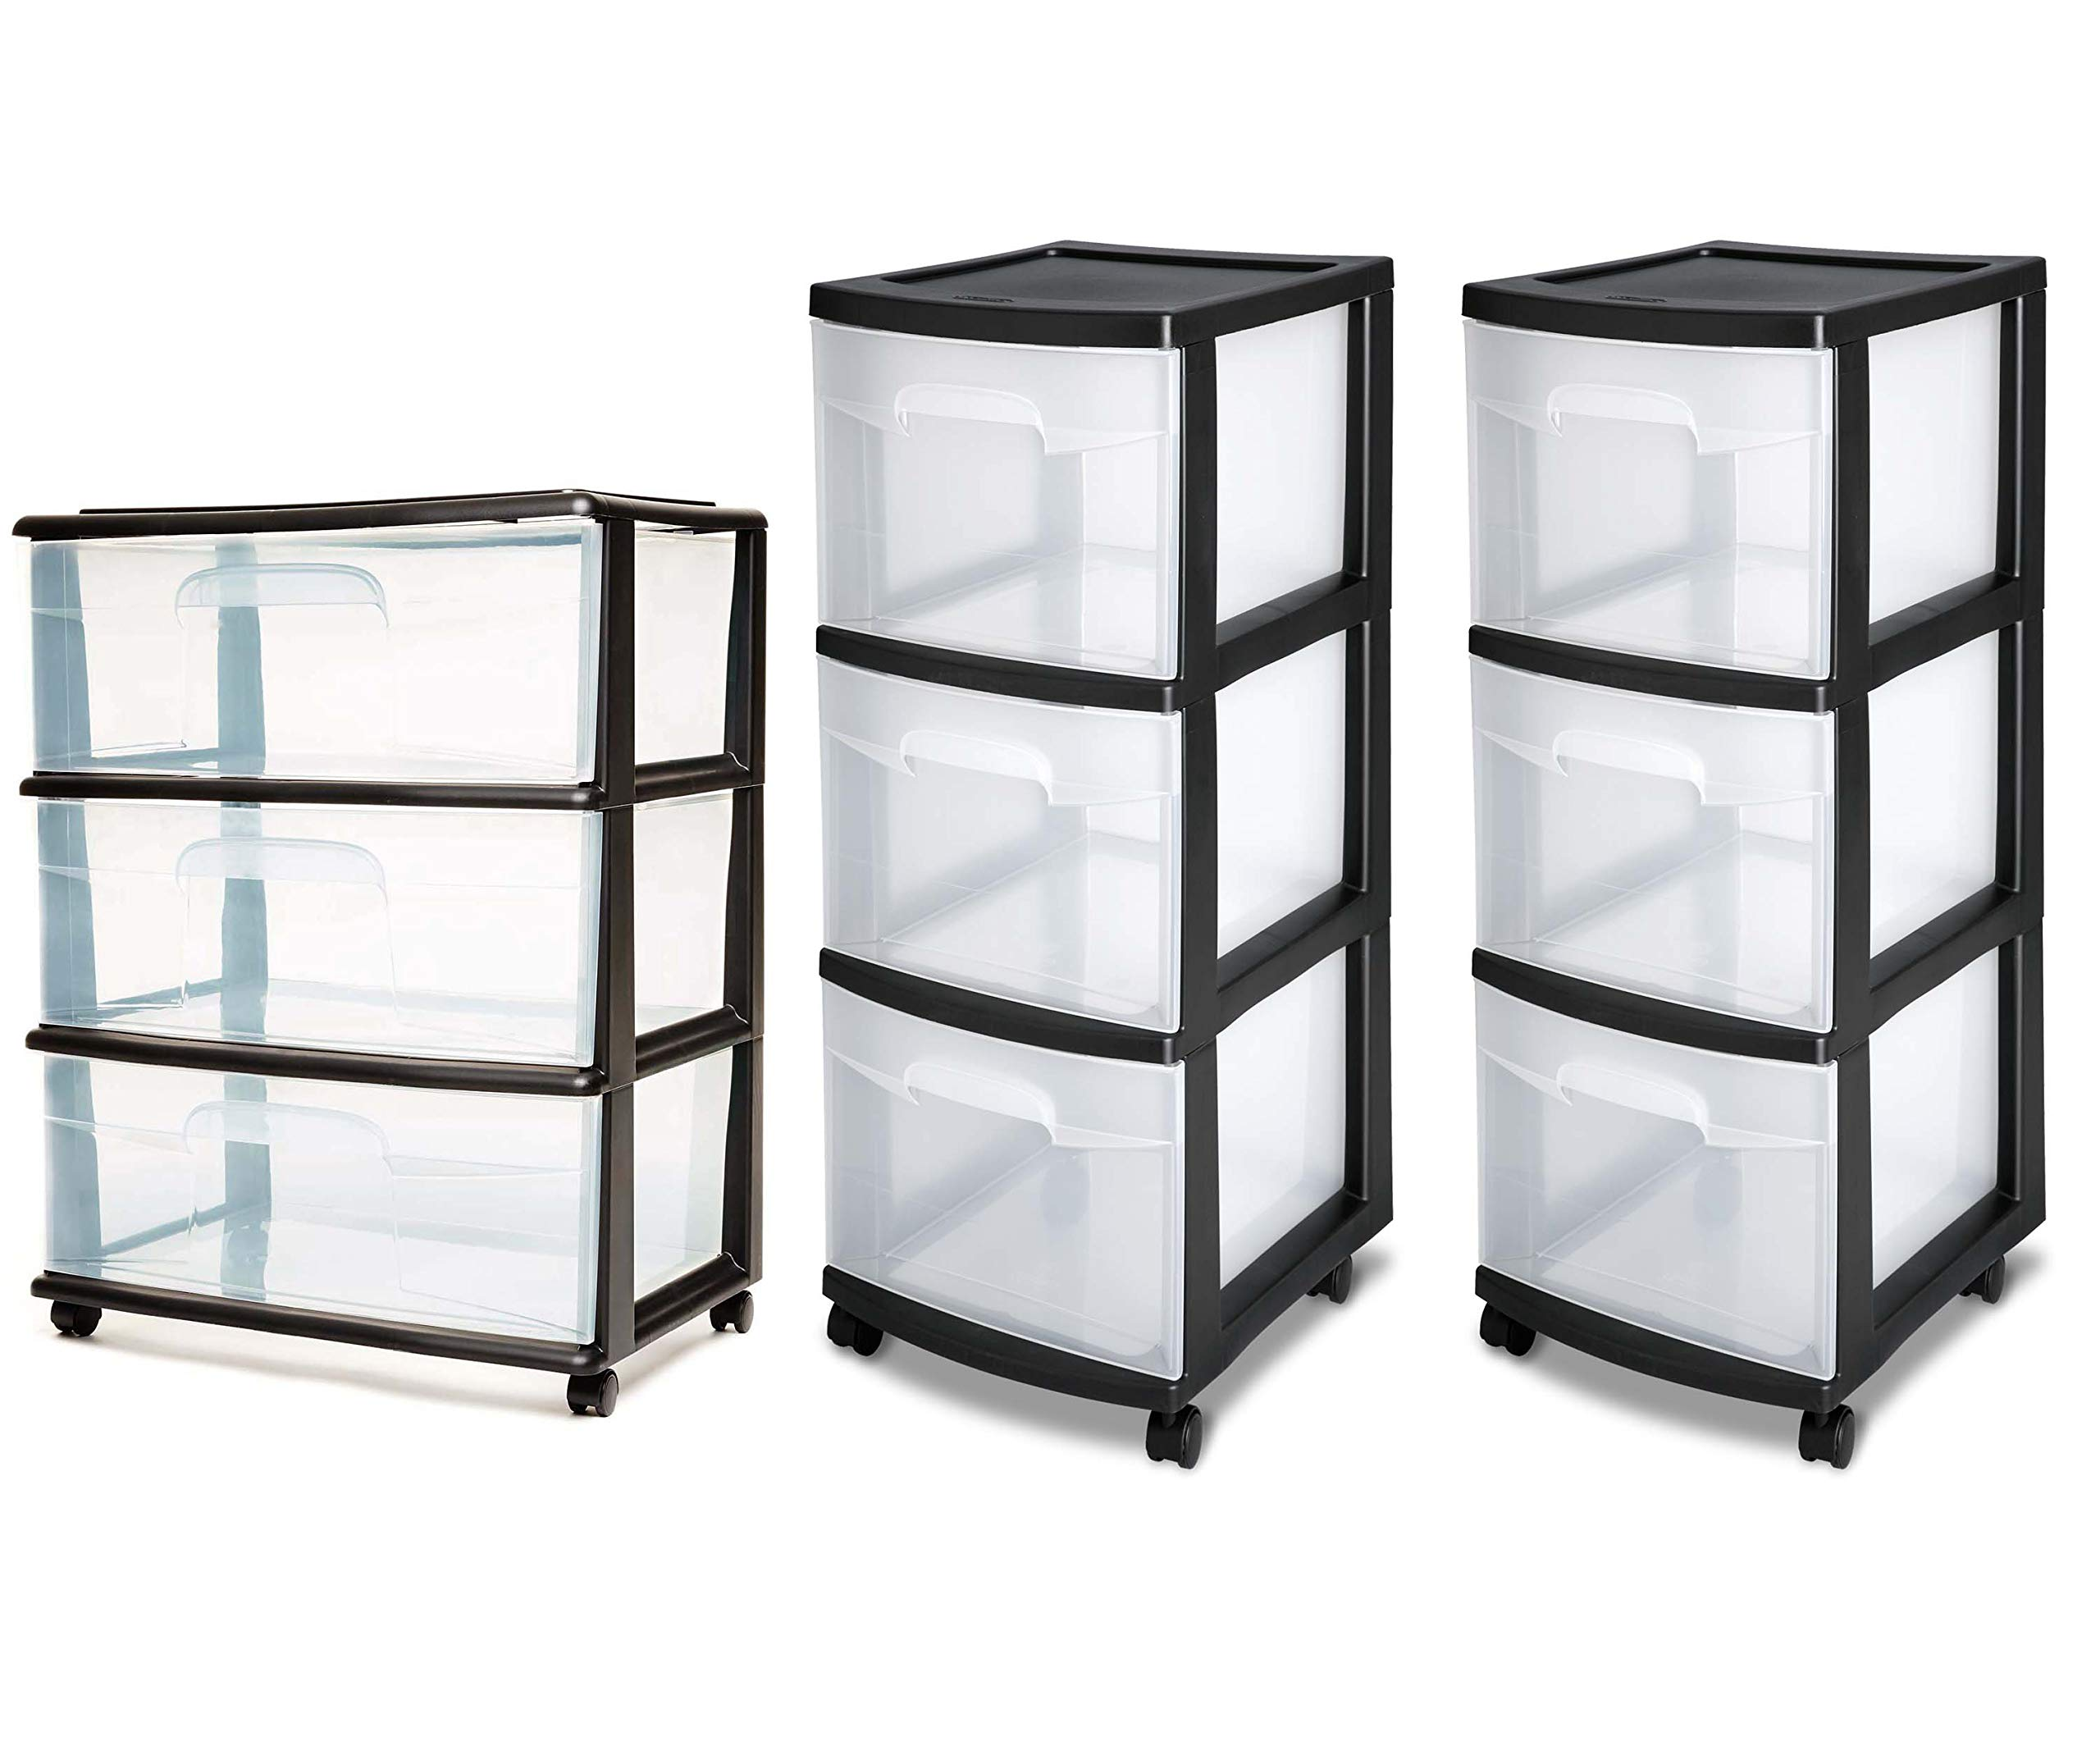 Homz 3 Drawer Wide Cart with Casters/Wheels, Set of 1 Bundle with Sterilite, 3 Drawer Cart in 2-Count